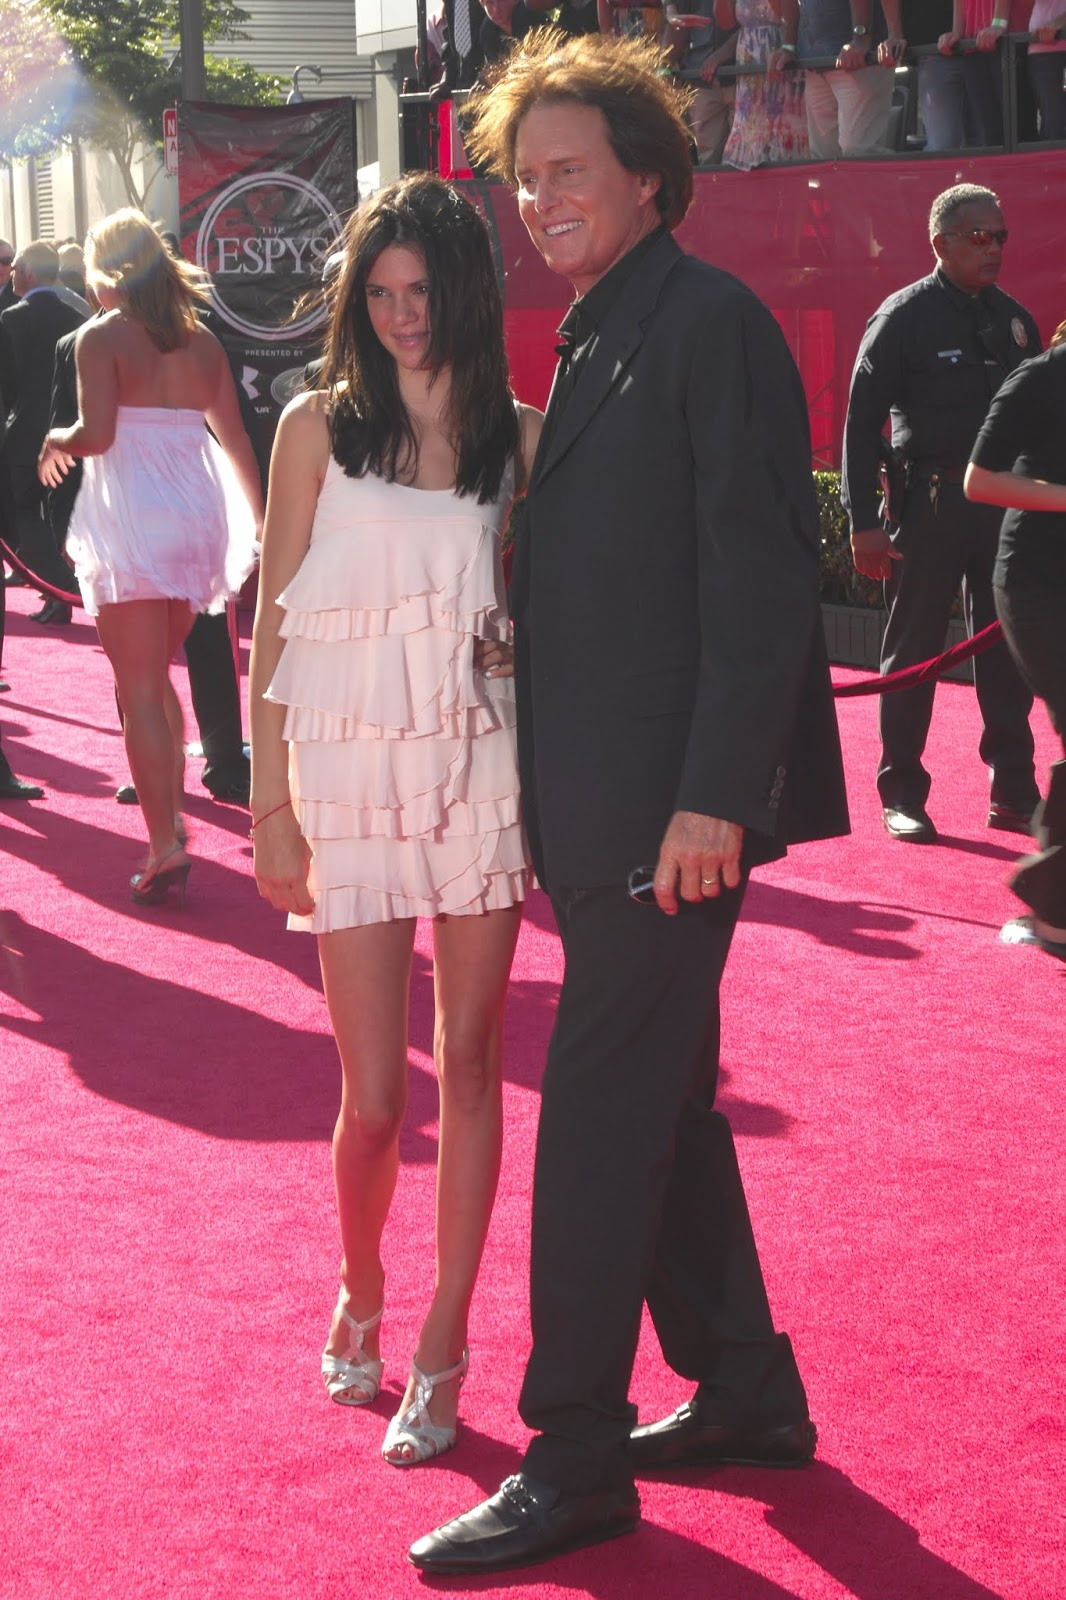 15-07-2009 17th Annual ESPY Awards-02